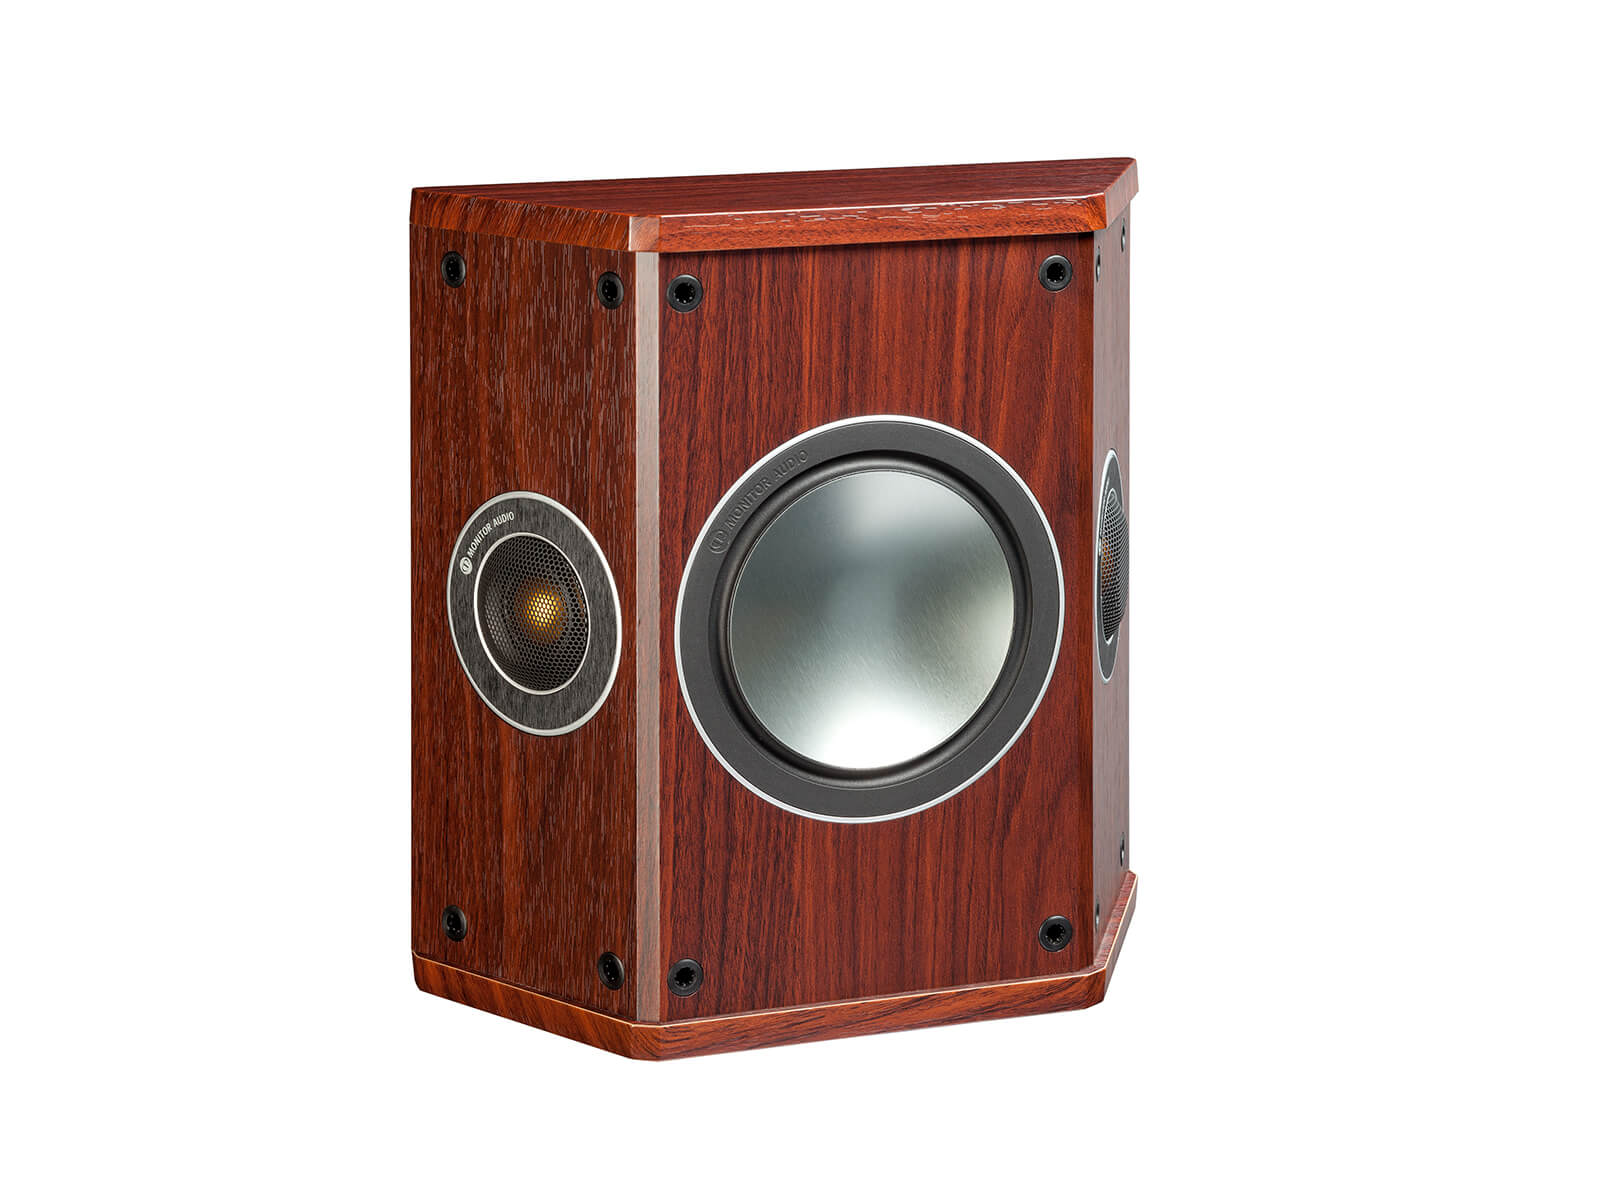 Bronze FX, grille-less surround speakers, with a rosemah vinyl finish.